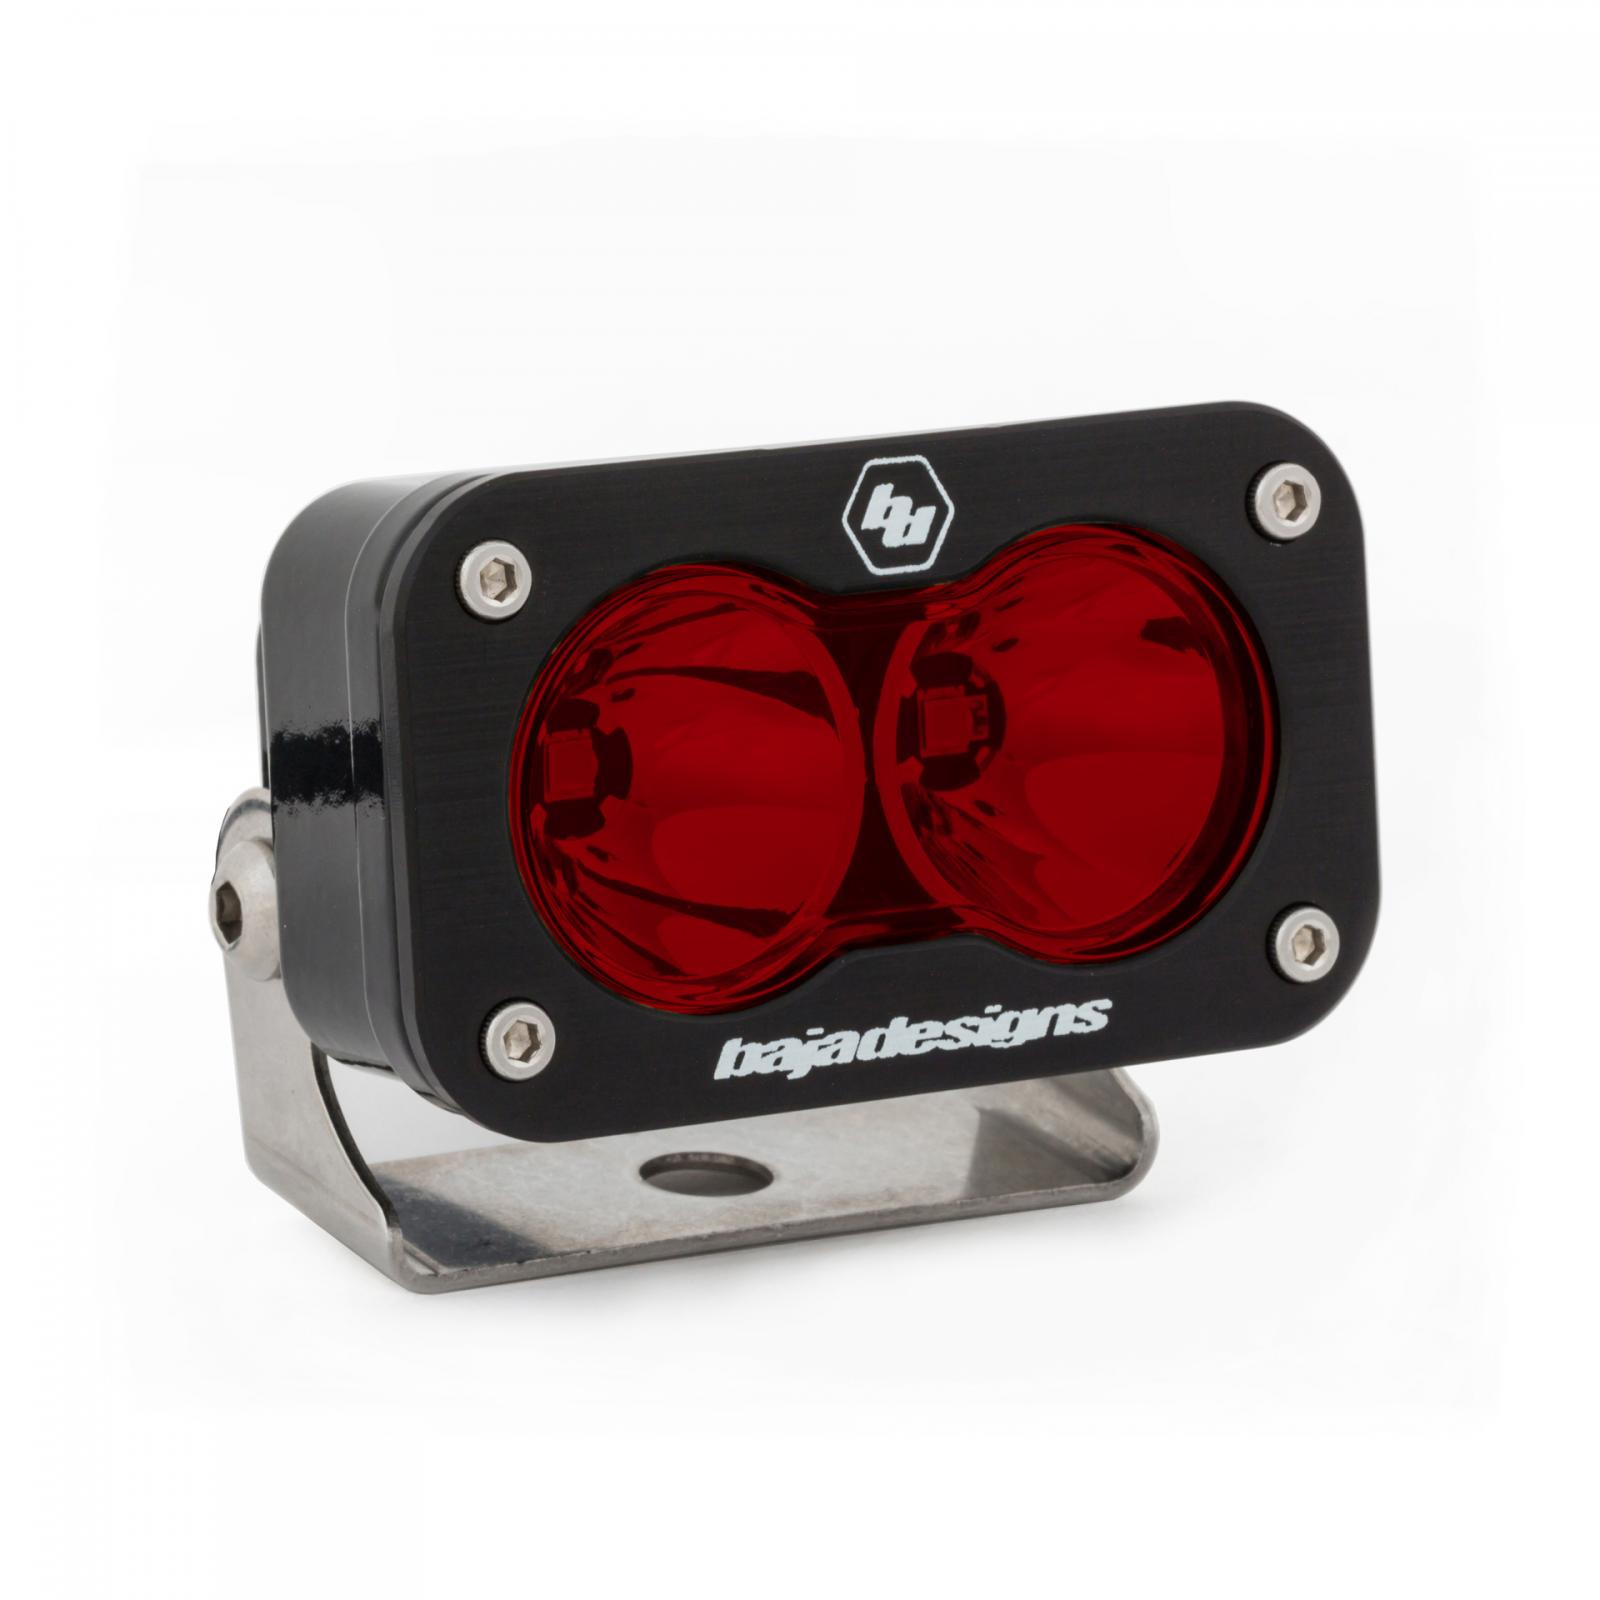 LED Work Light Red Lens Spot Pattern S2 Pro Baja Designs